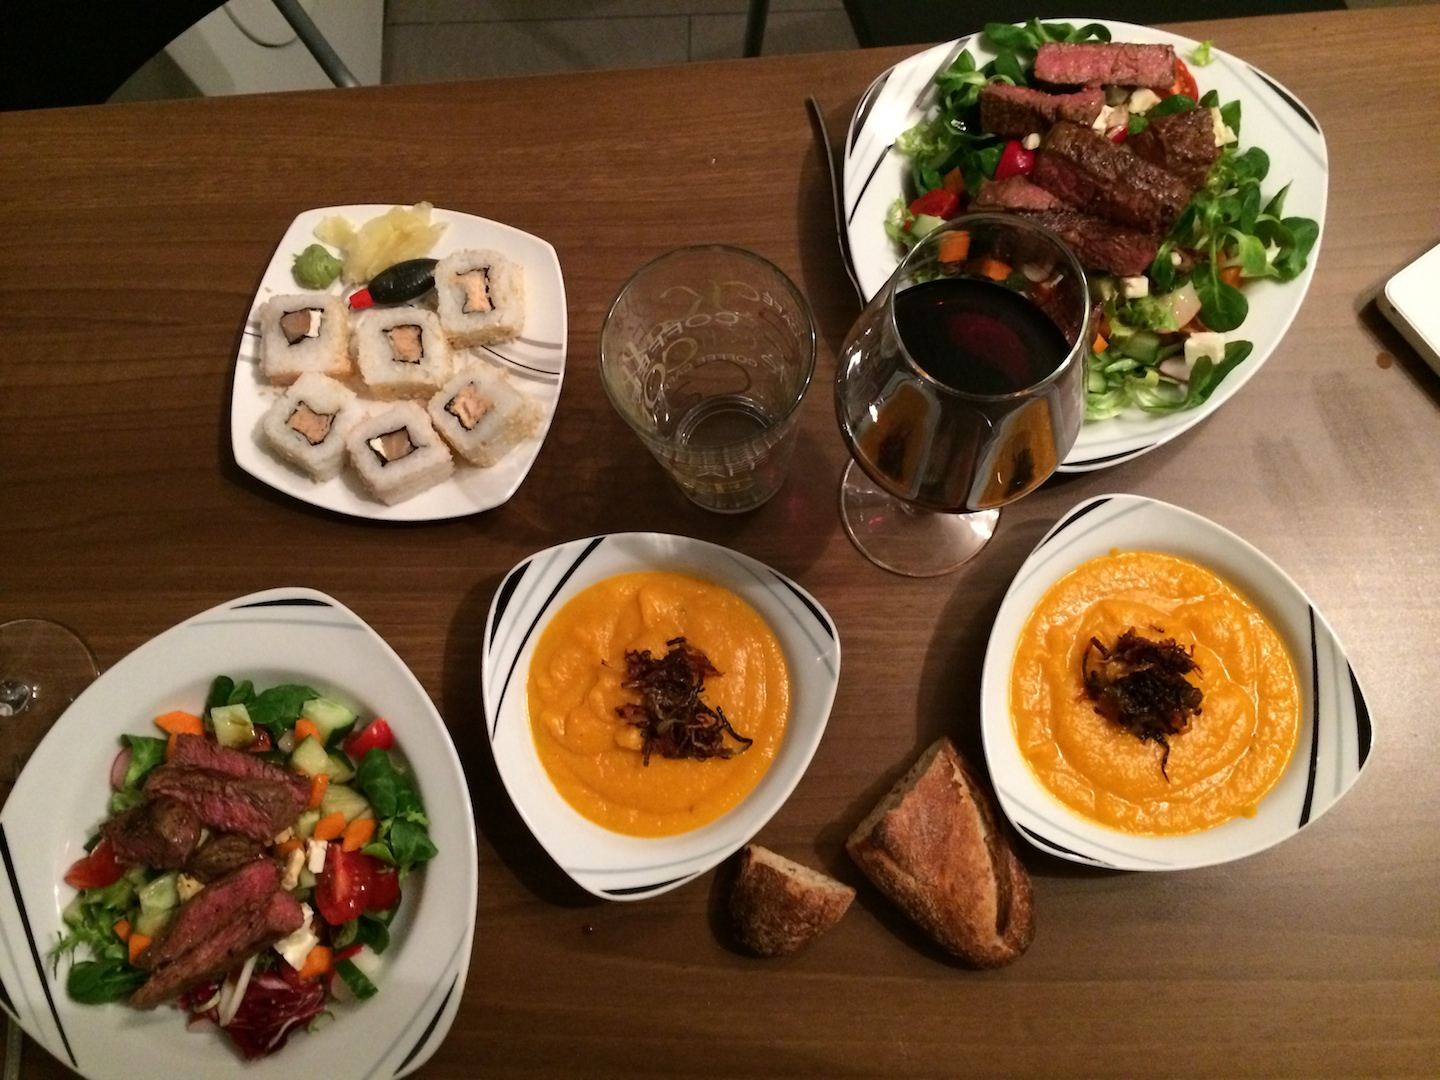 We cooked a super delicious pumpkin and carrot soup. Salad with scotch fillet and sushi made it perfect!